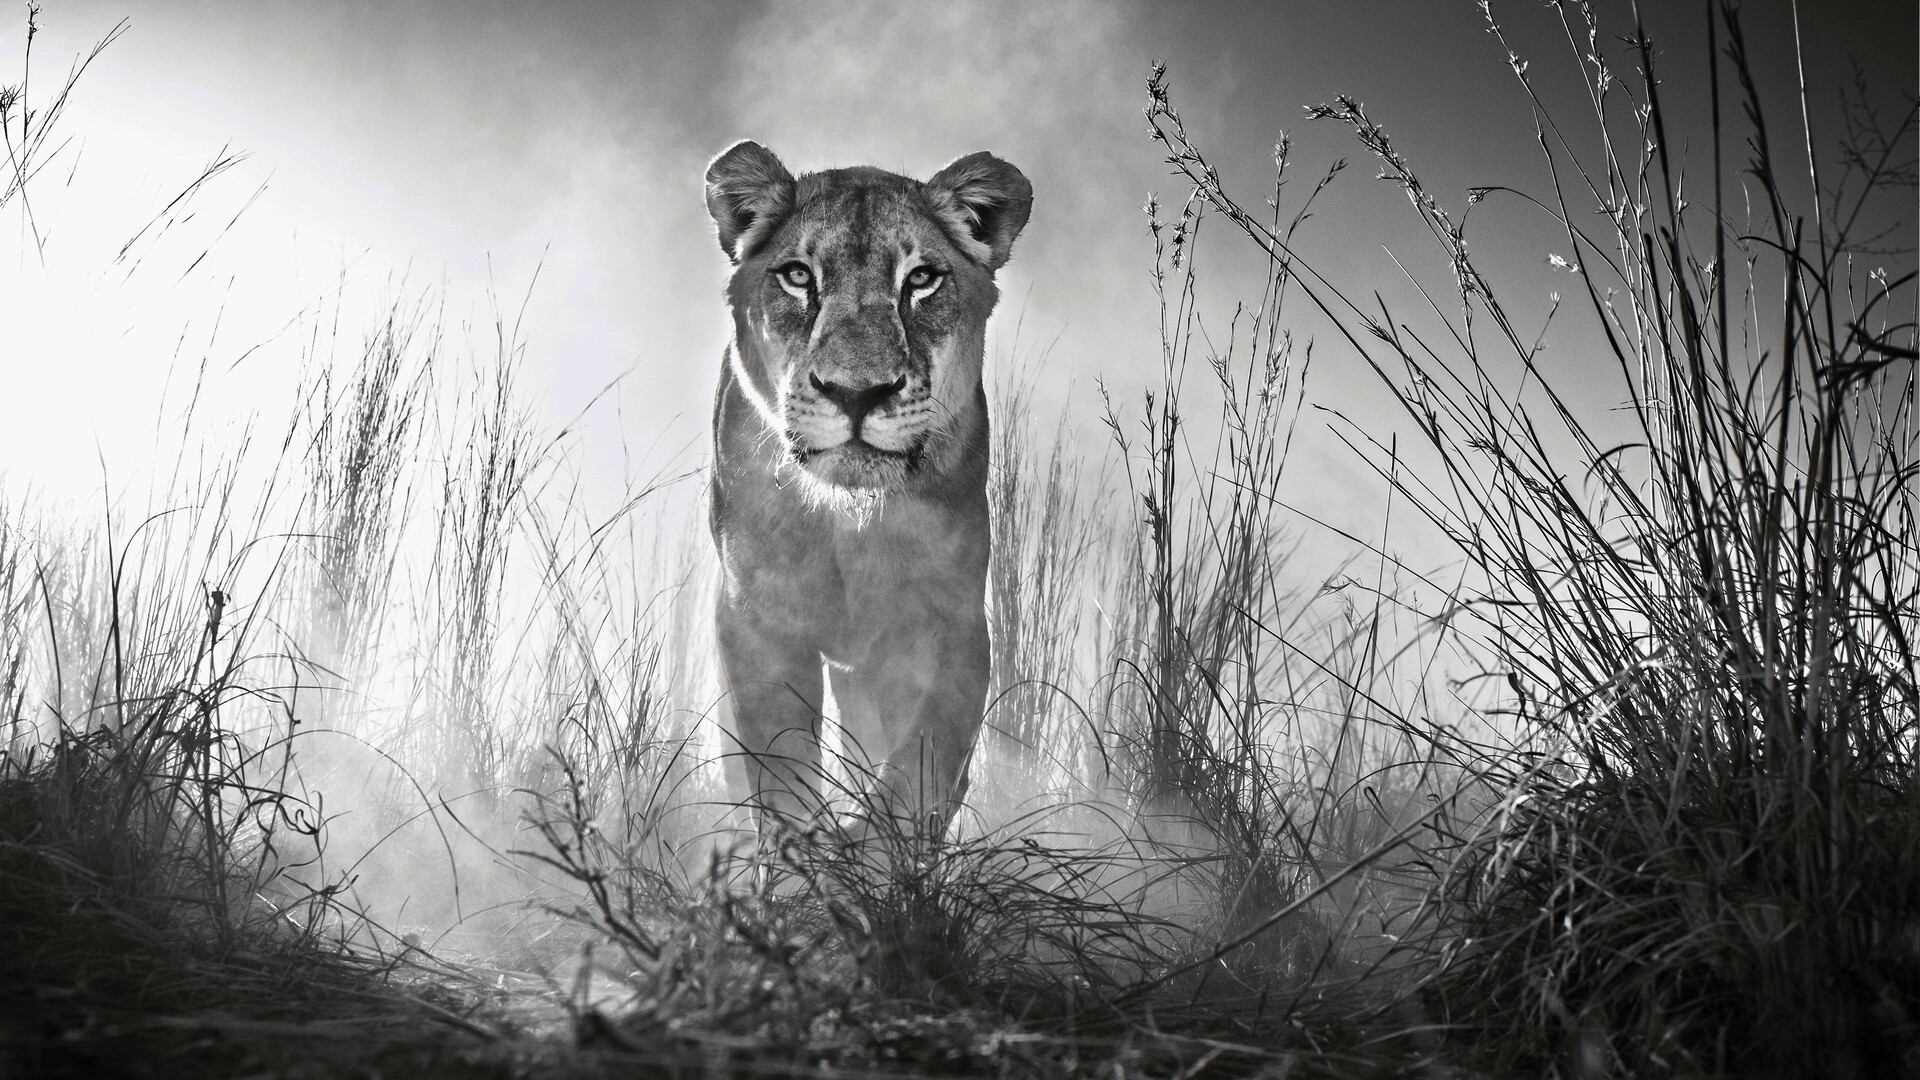 1920x1080 Lion 4k Black And White Laptop Full Hd 1080p Hd 4k Wallpapers Images Backgrounds Photos And Pictures